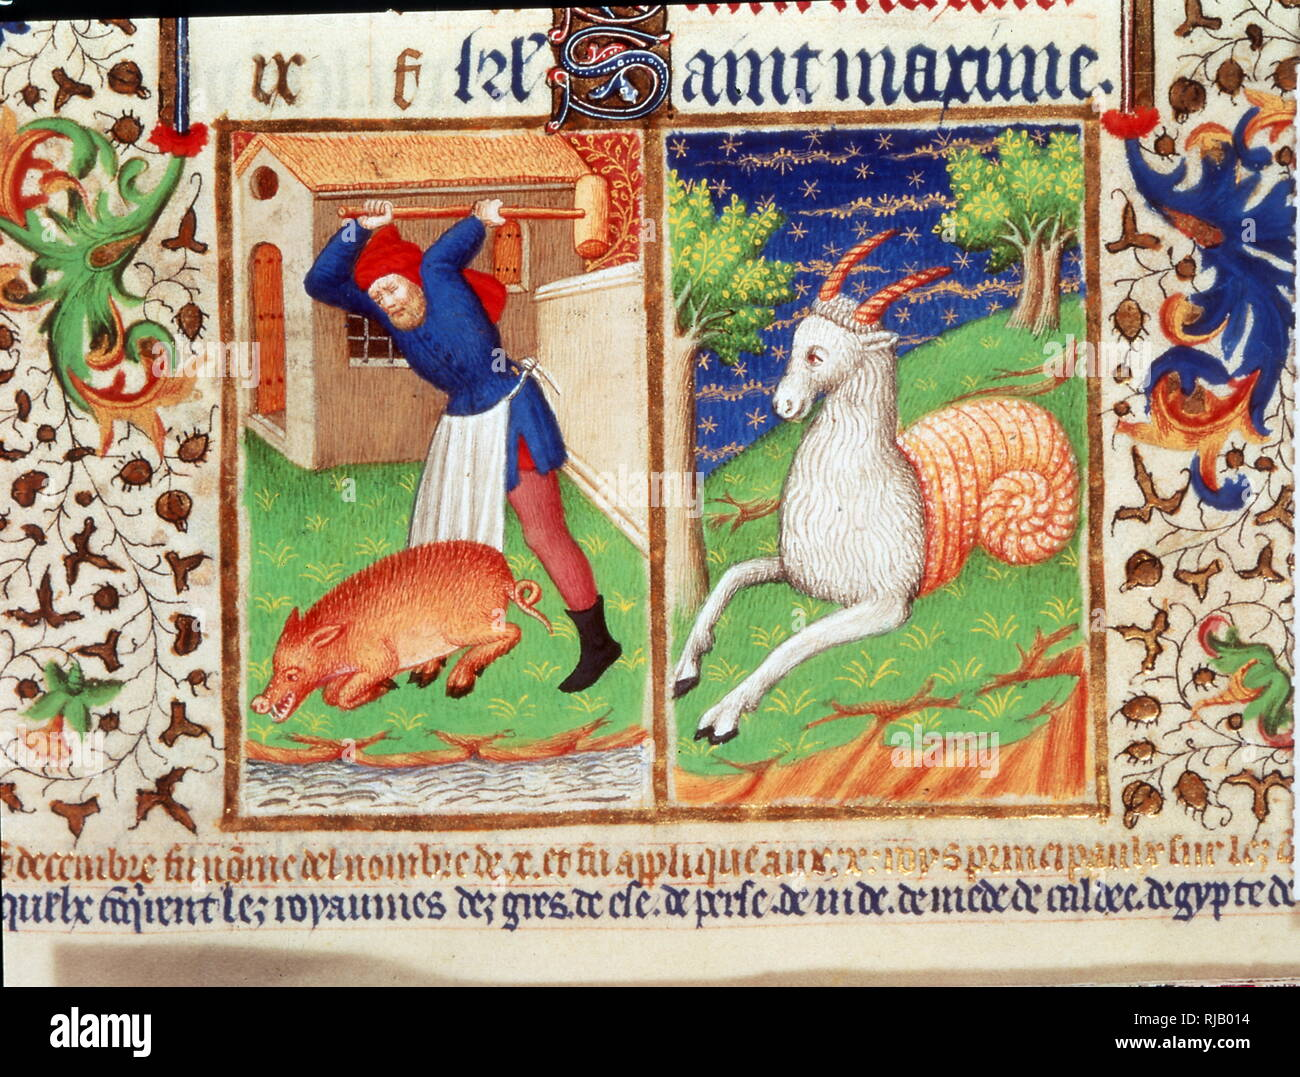 French book of hours showing a pig being slaughtered and a unicorn 1423 - Stock Image